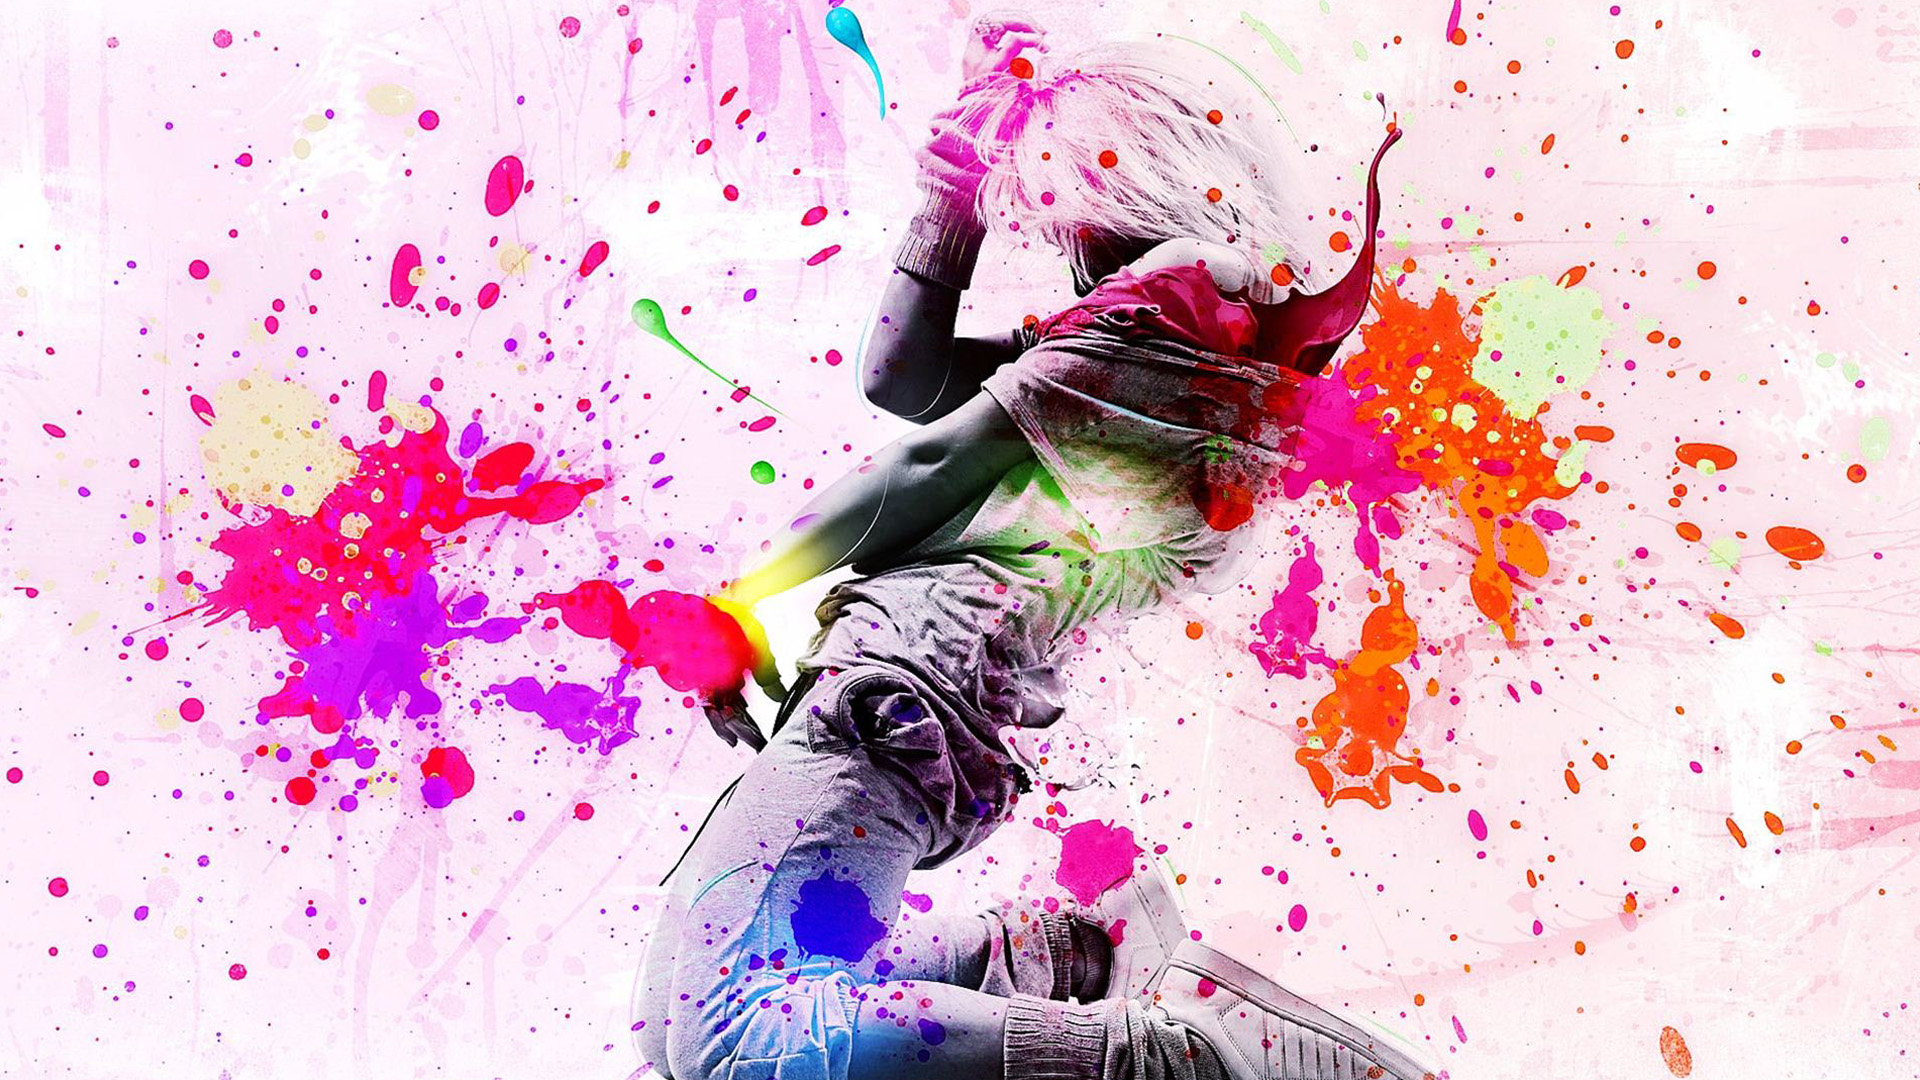 ... Wallpaper - Holi festival cool wallpapers 1920 1080 at Latest Wall